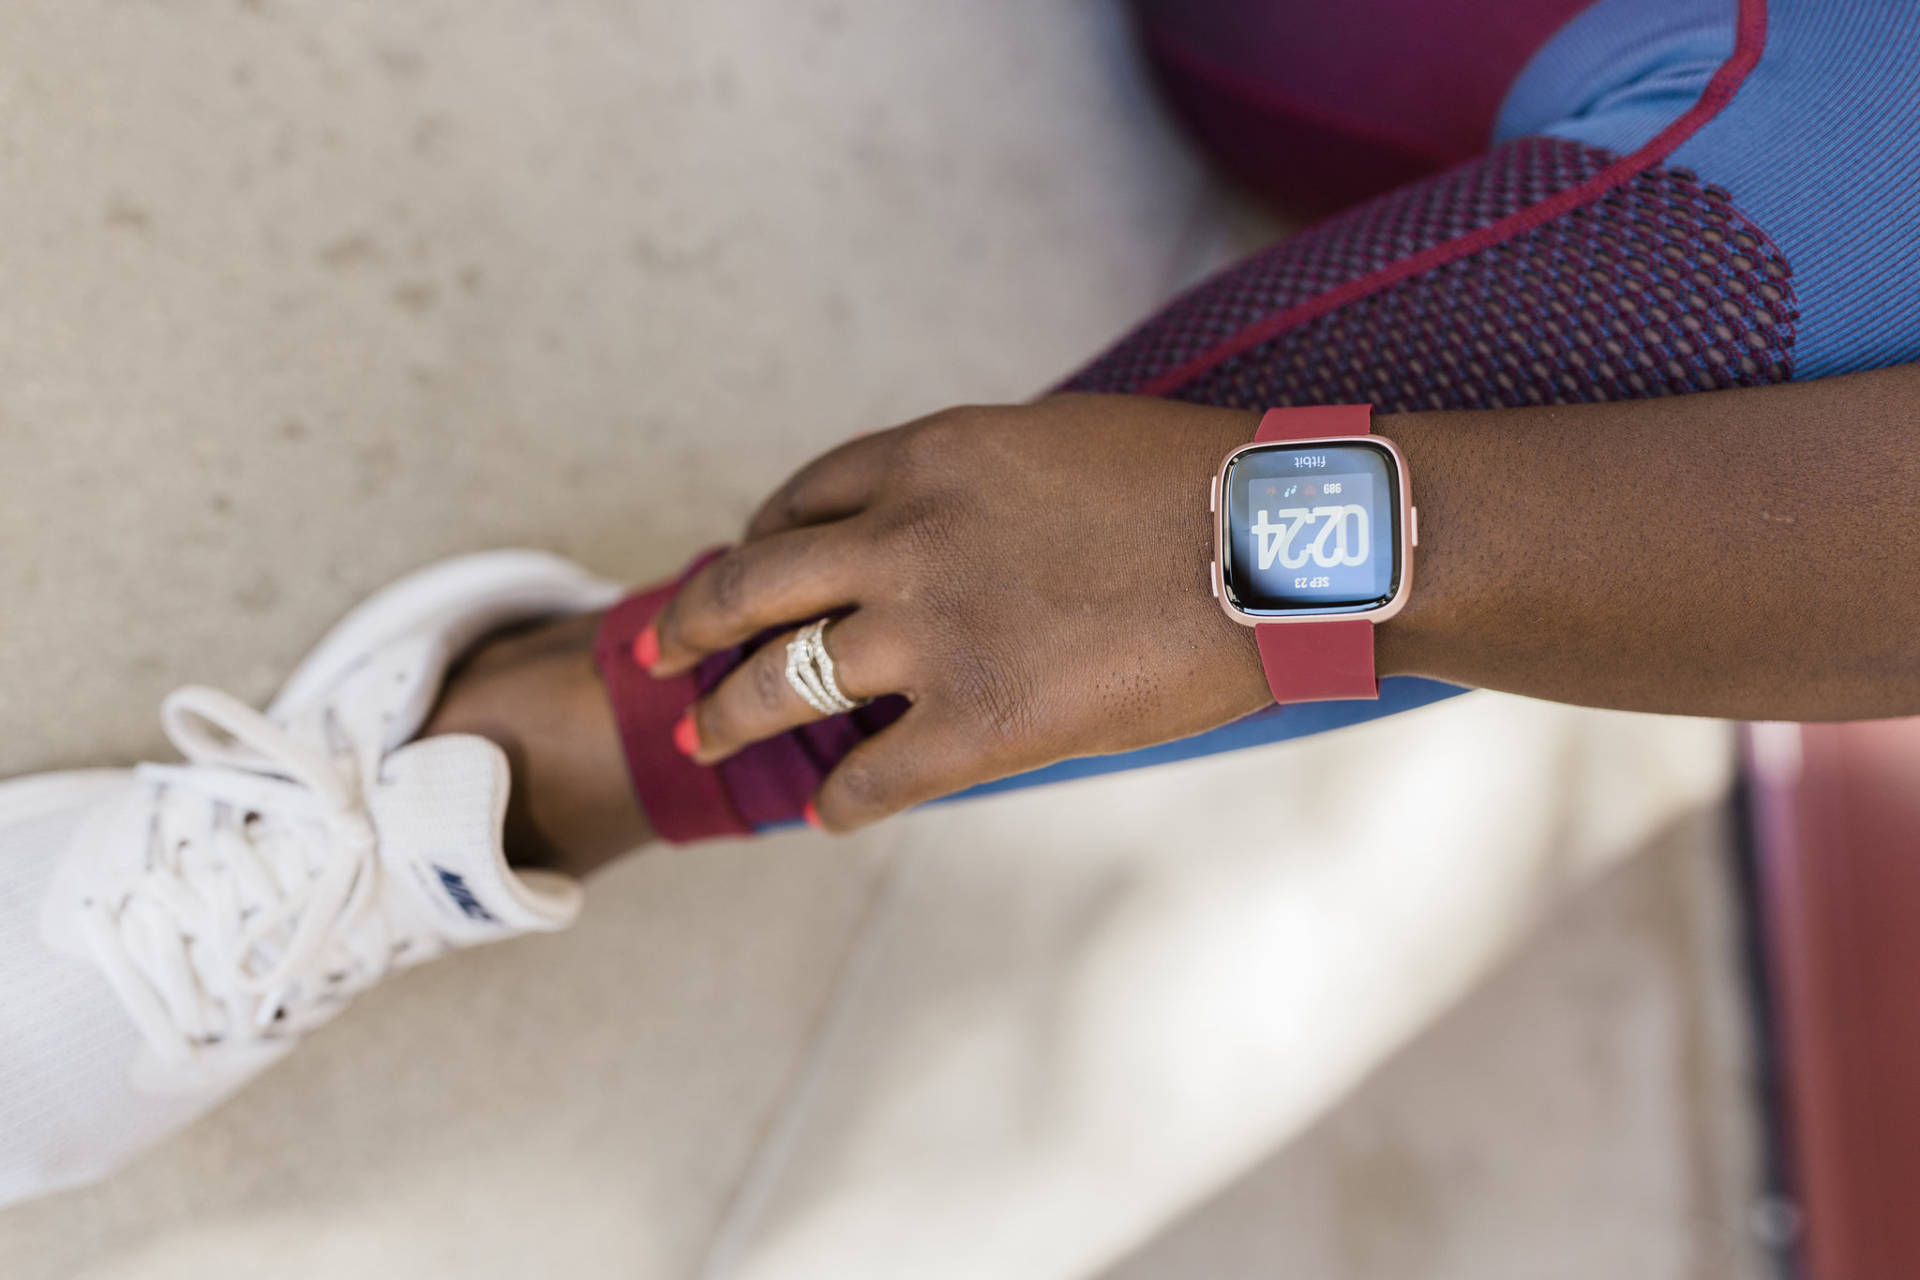 """The Fitbit Versa is described as a """"modern, intuitive smartwatch at an approachable price."""" The price point is the most impressive for me. With the countless features, simplicity and ease of use, everyone should have one of these bad boys! It is the lightest metal smartwatch in the U.S. market."""